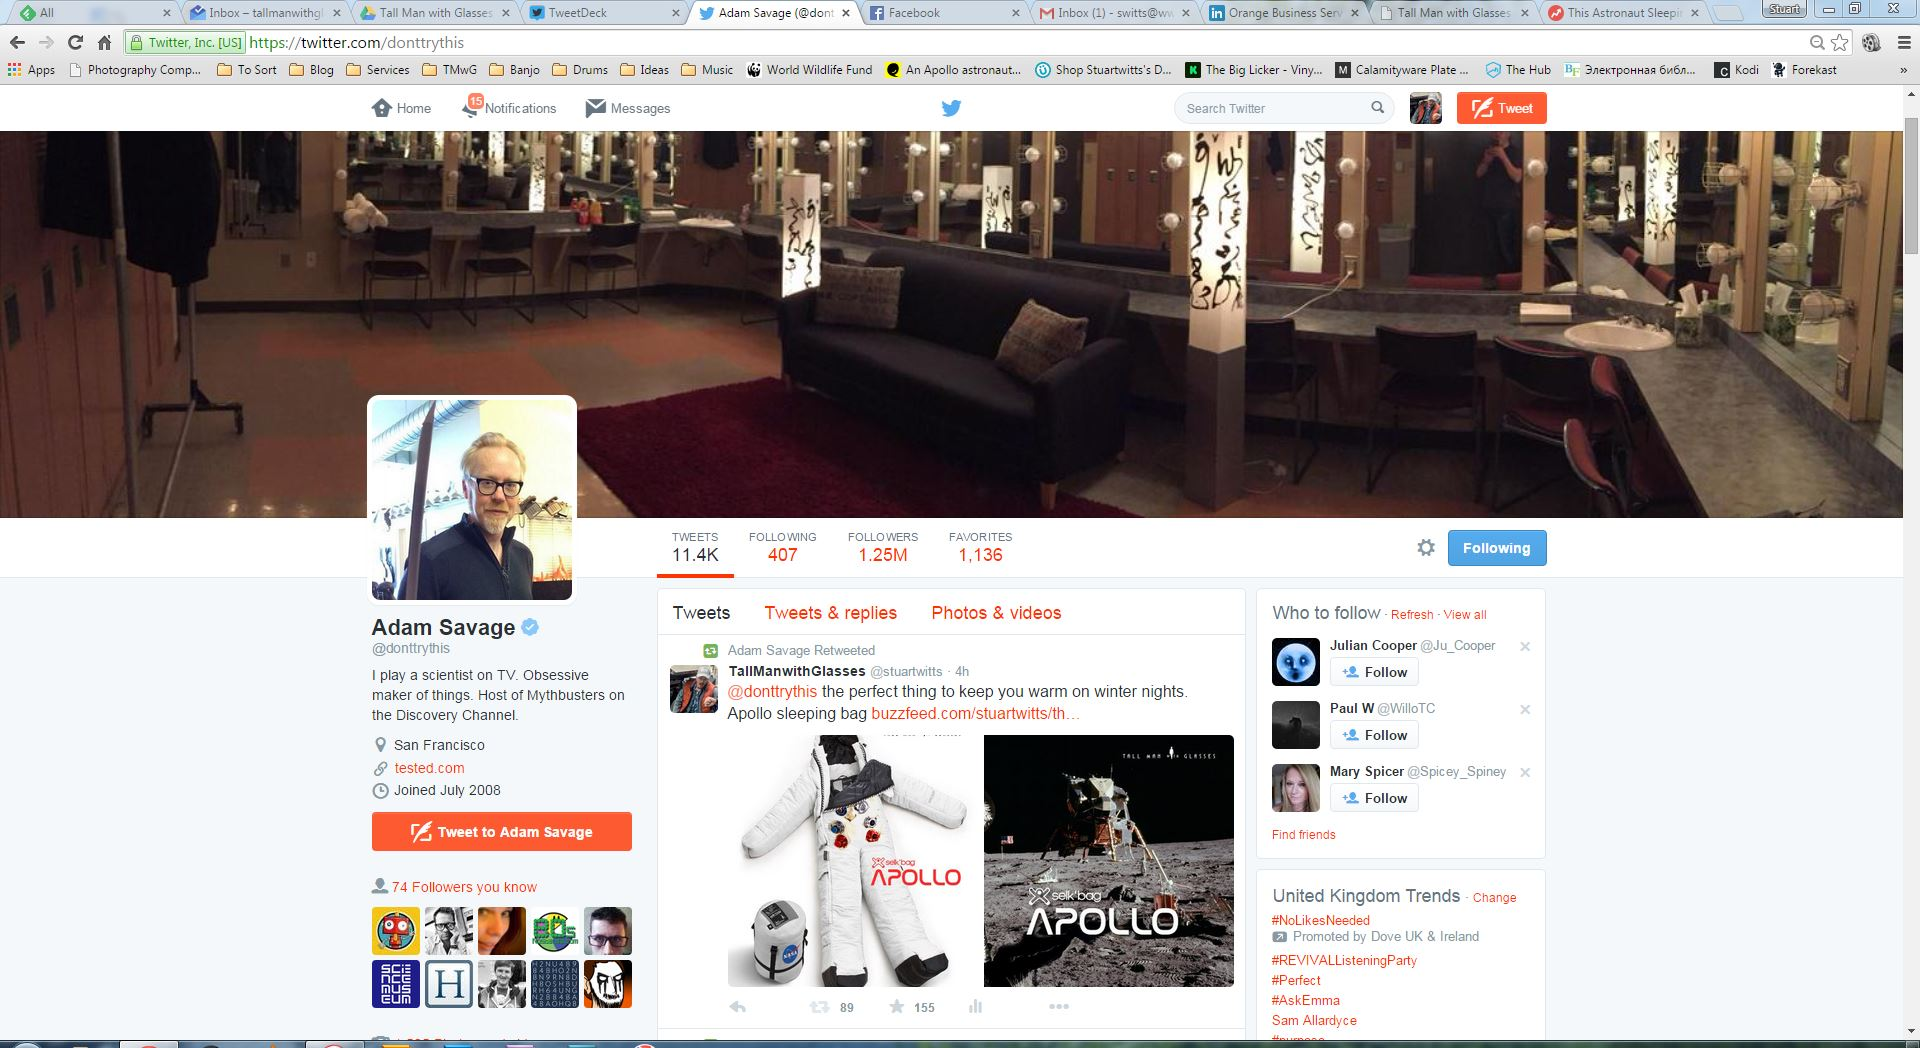 Adam Savage (Mythbusters) shows his support for the Apollo Selk'Bag